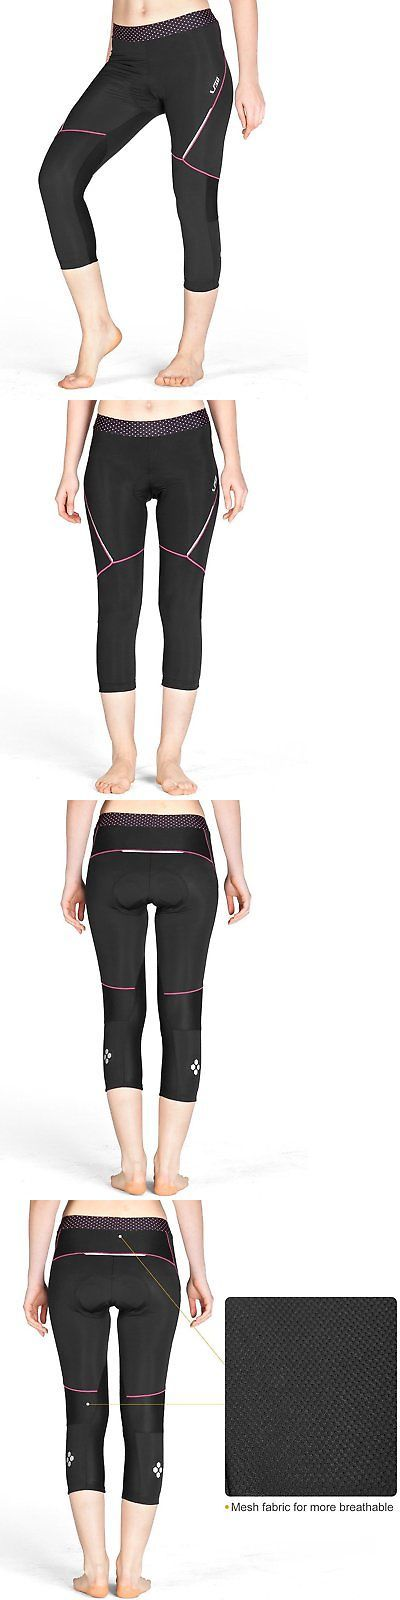 Tights and Pants 177854: Lameda Womens Capri Leggings Compression Tights Gel Padded Dot Large -> BUY IT NOW ONLY: $33.46 on eBay!